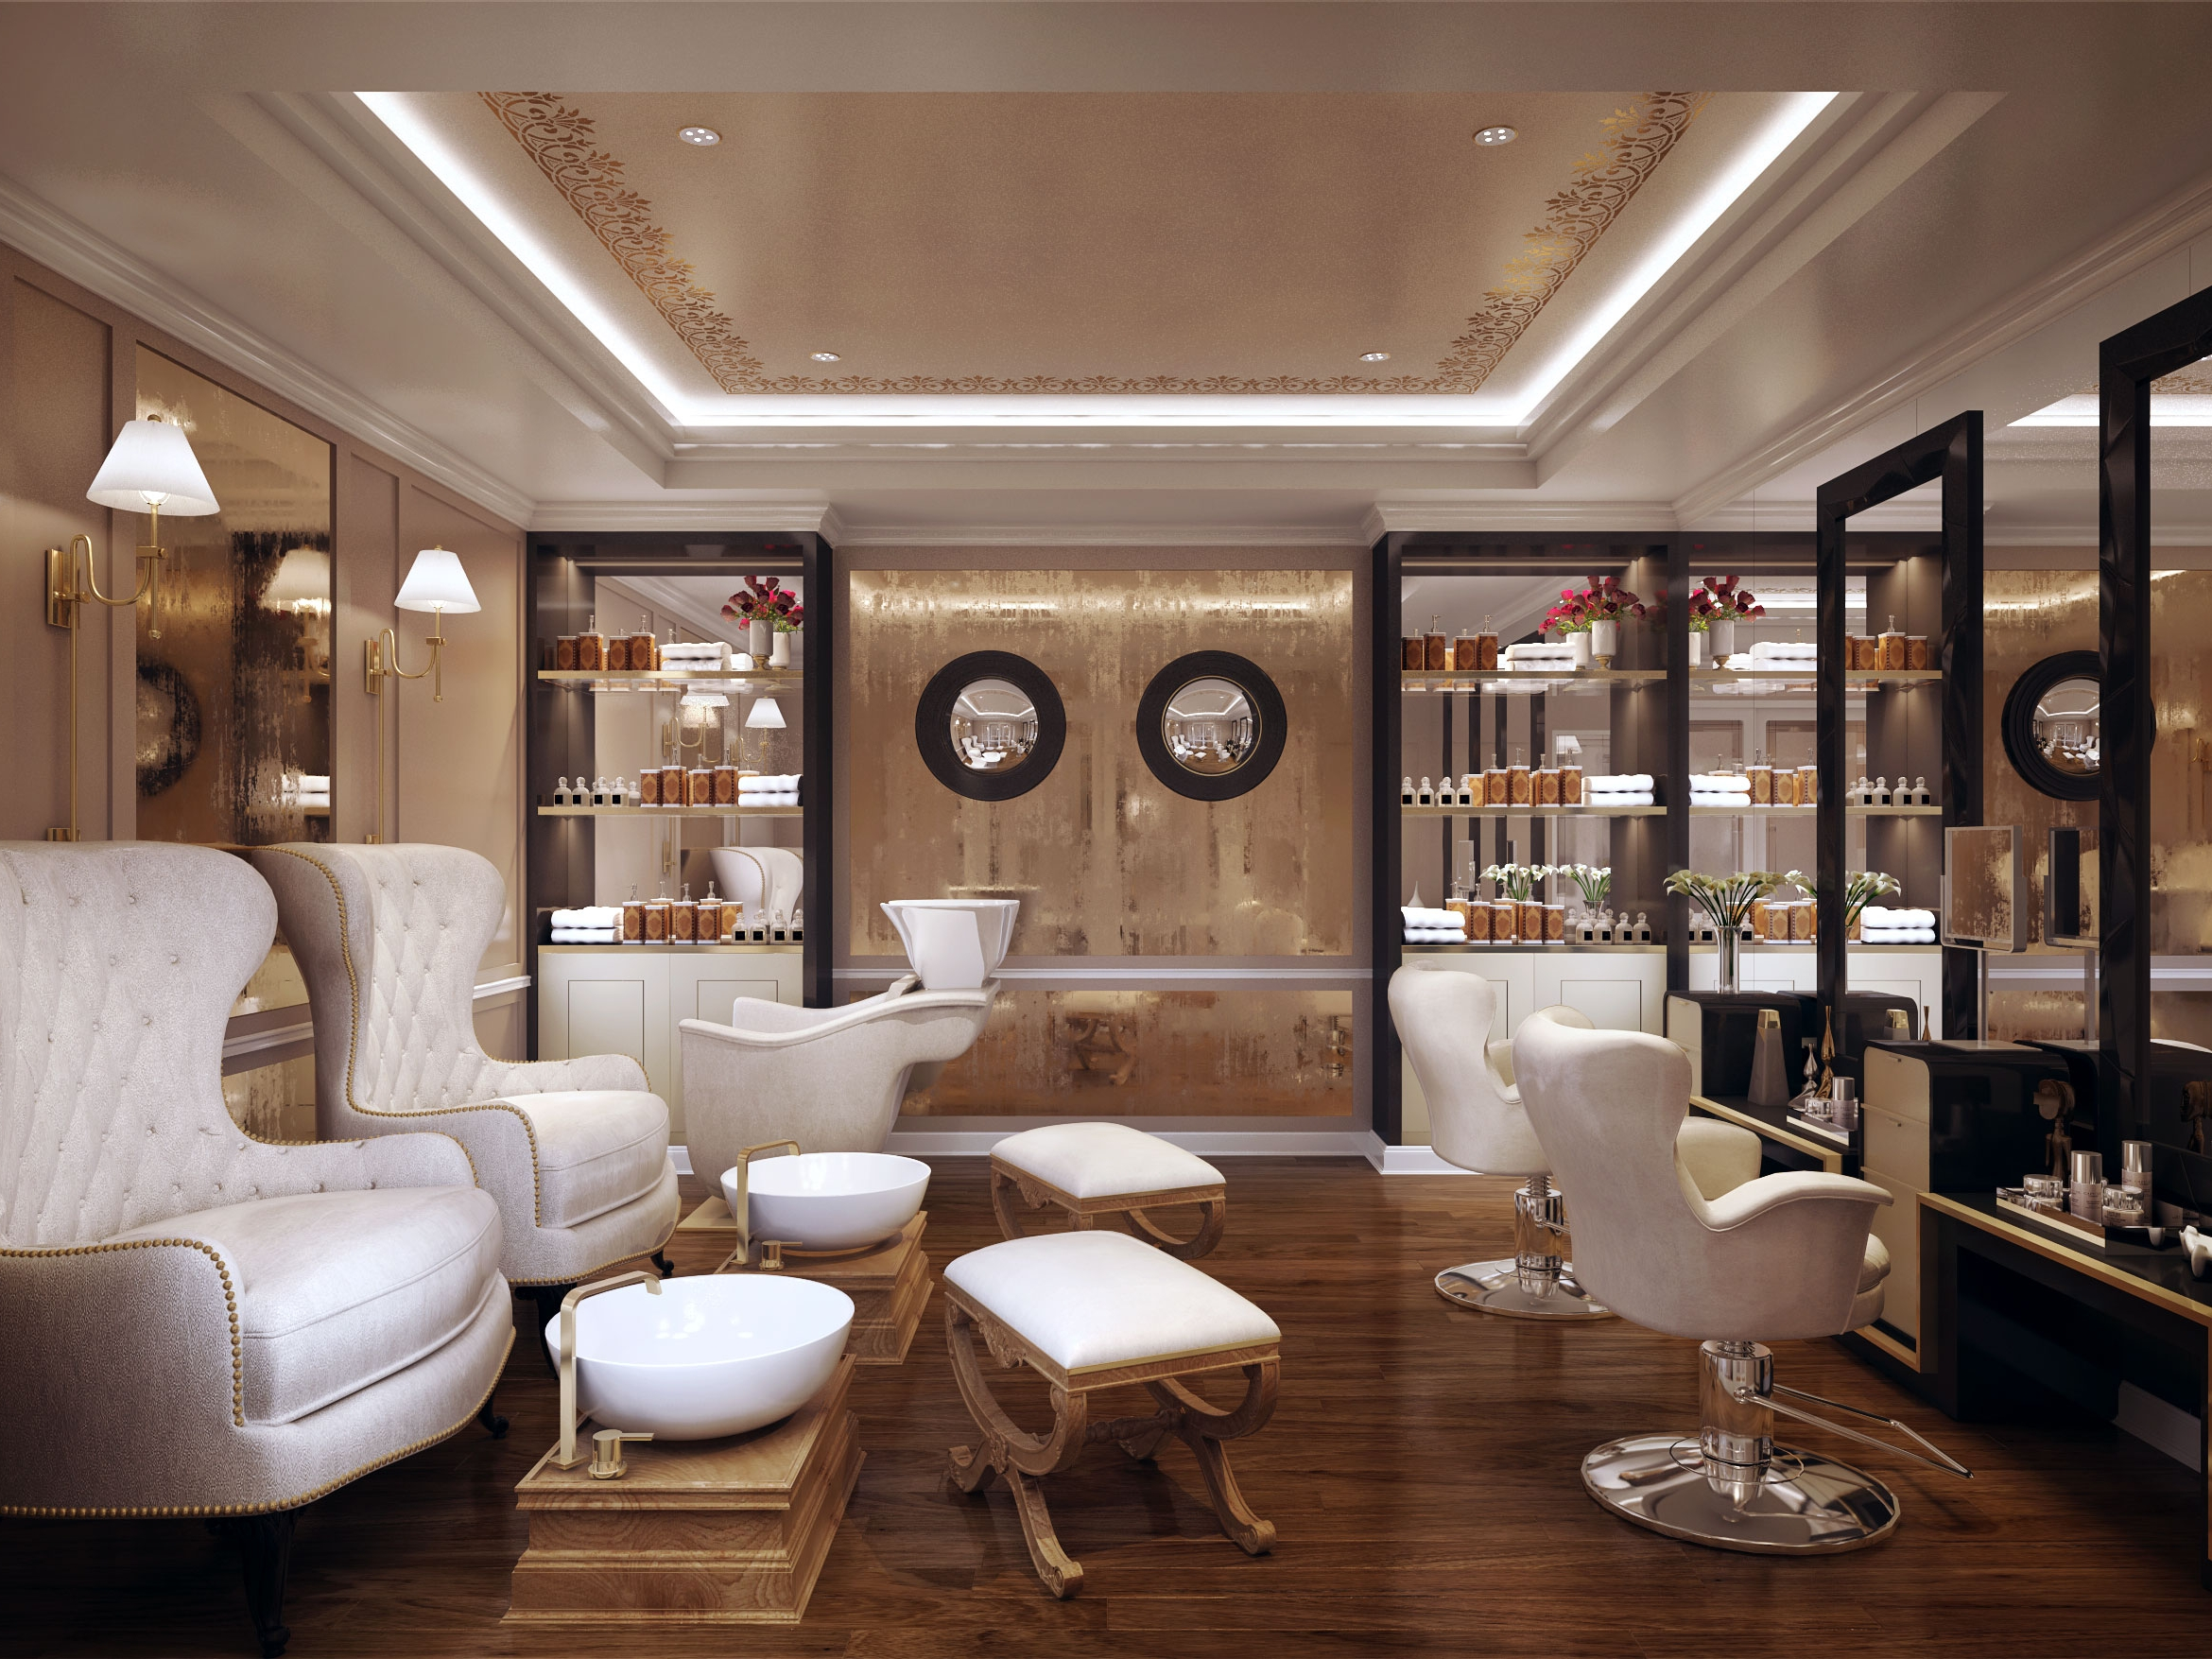 Hair Salon and Nail Bar : The Hair Salon & Nail Bar has been specially created for the guests who love to maintain their beauty standards even while on holiday.